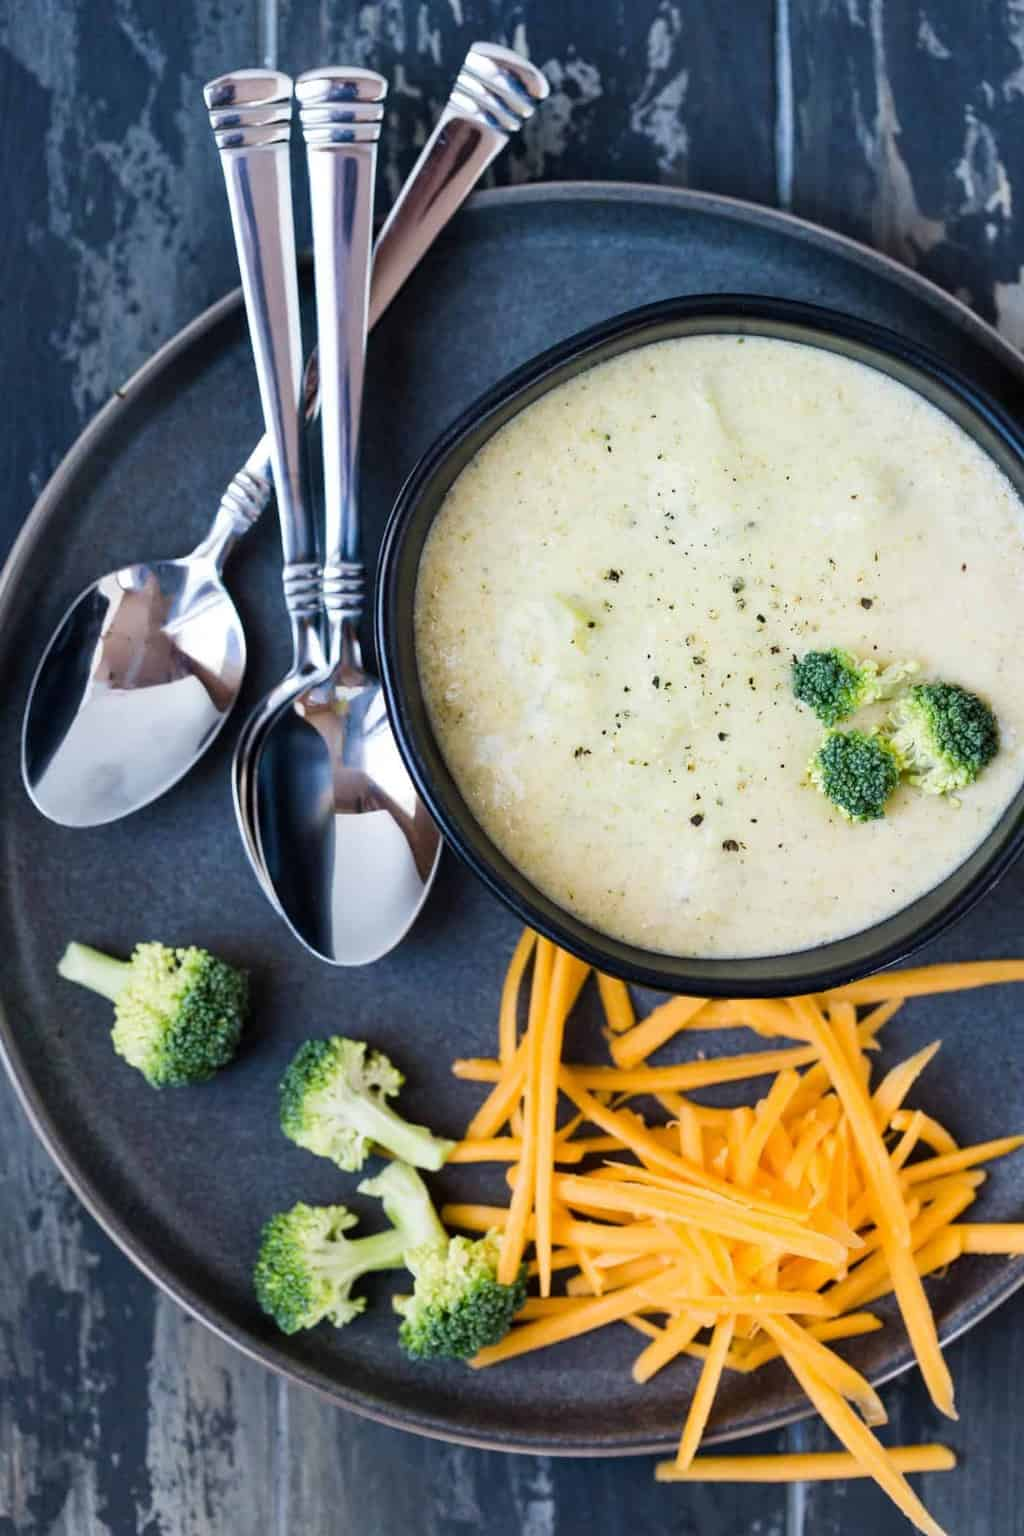 Broccoli Cheese Soup in small black bowl with shredded cheddar cheese and fresh broccoli for garnish.